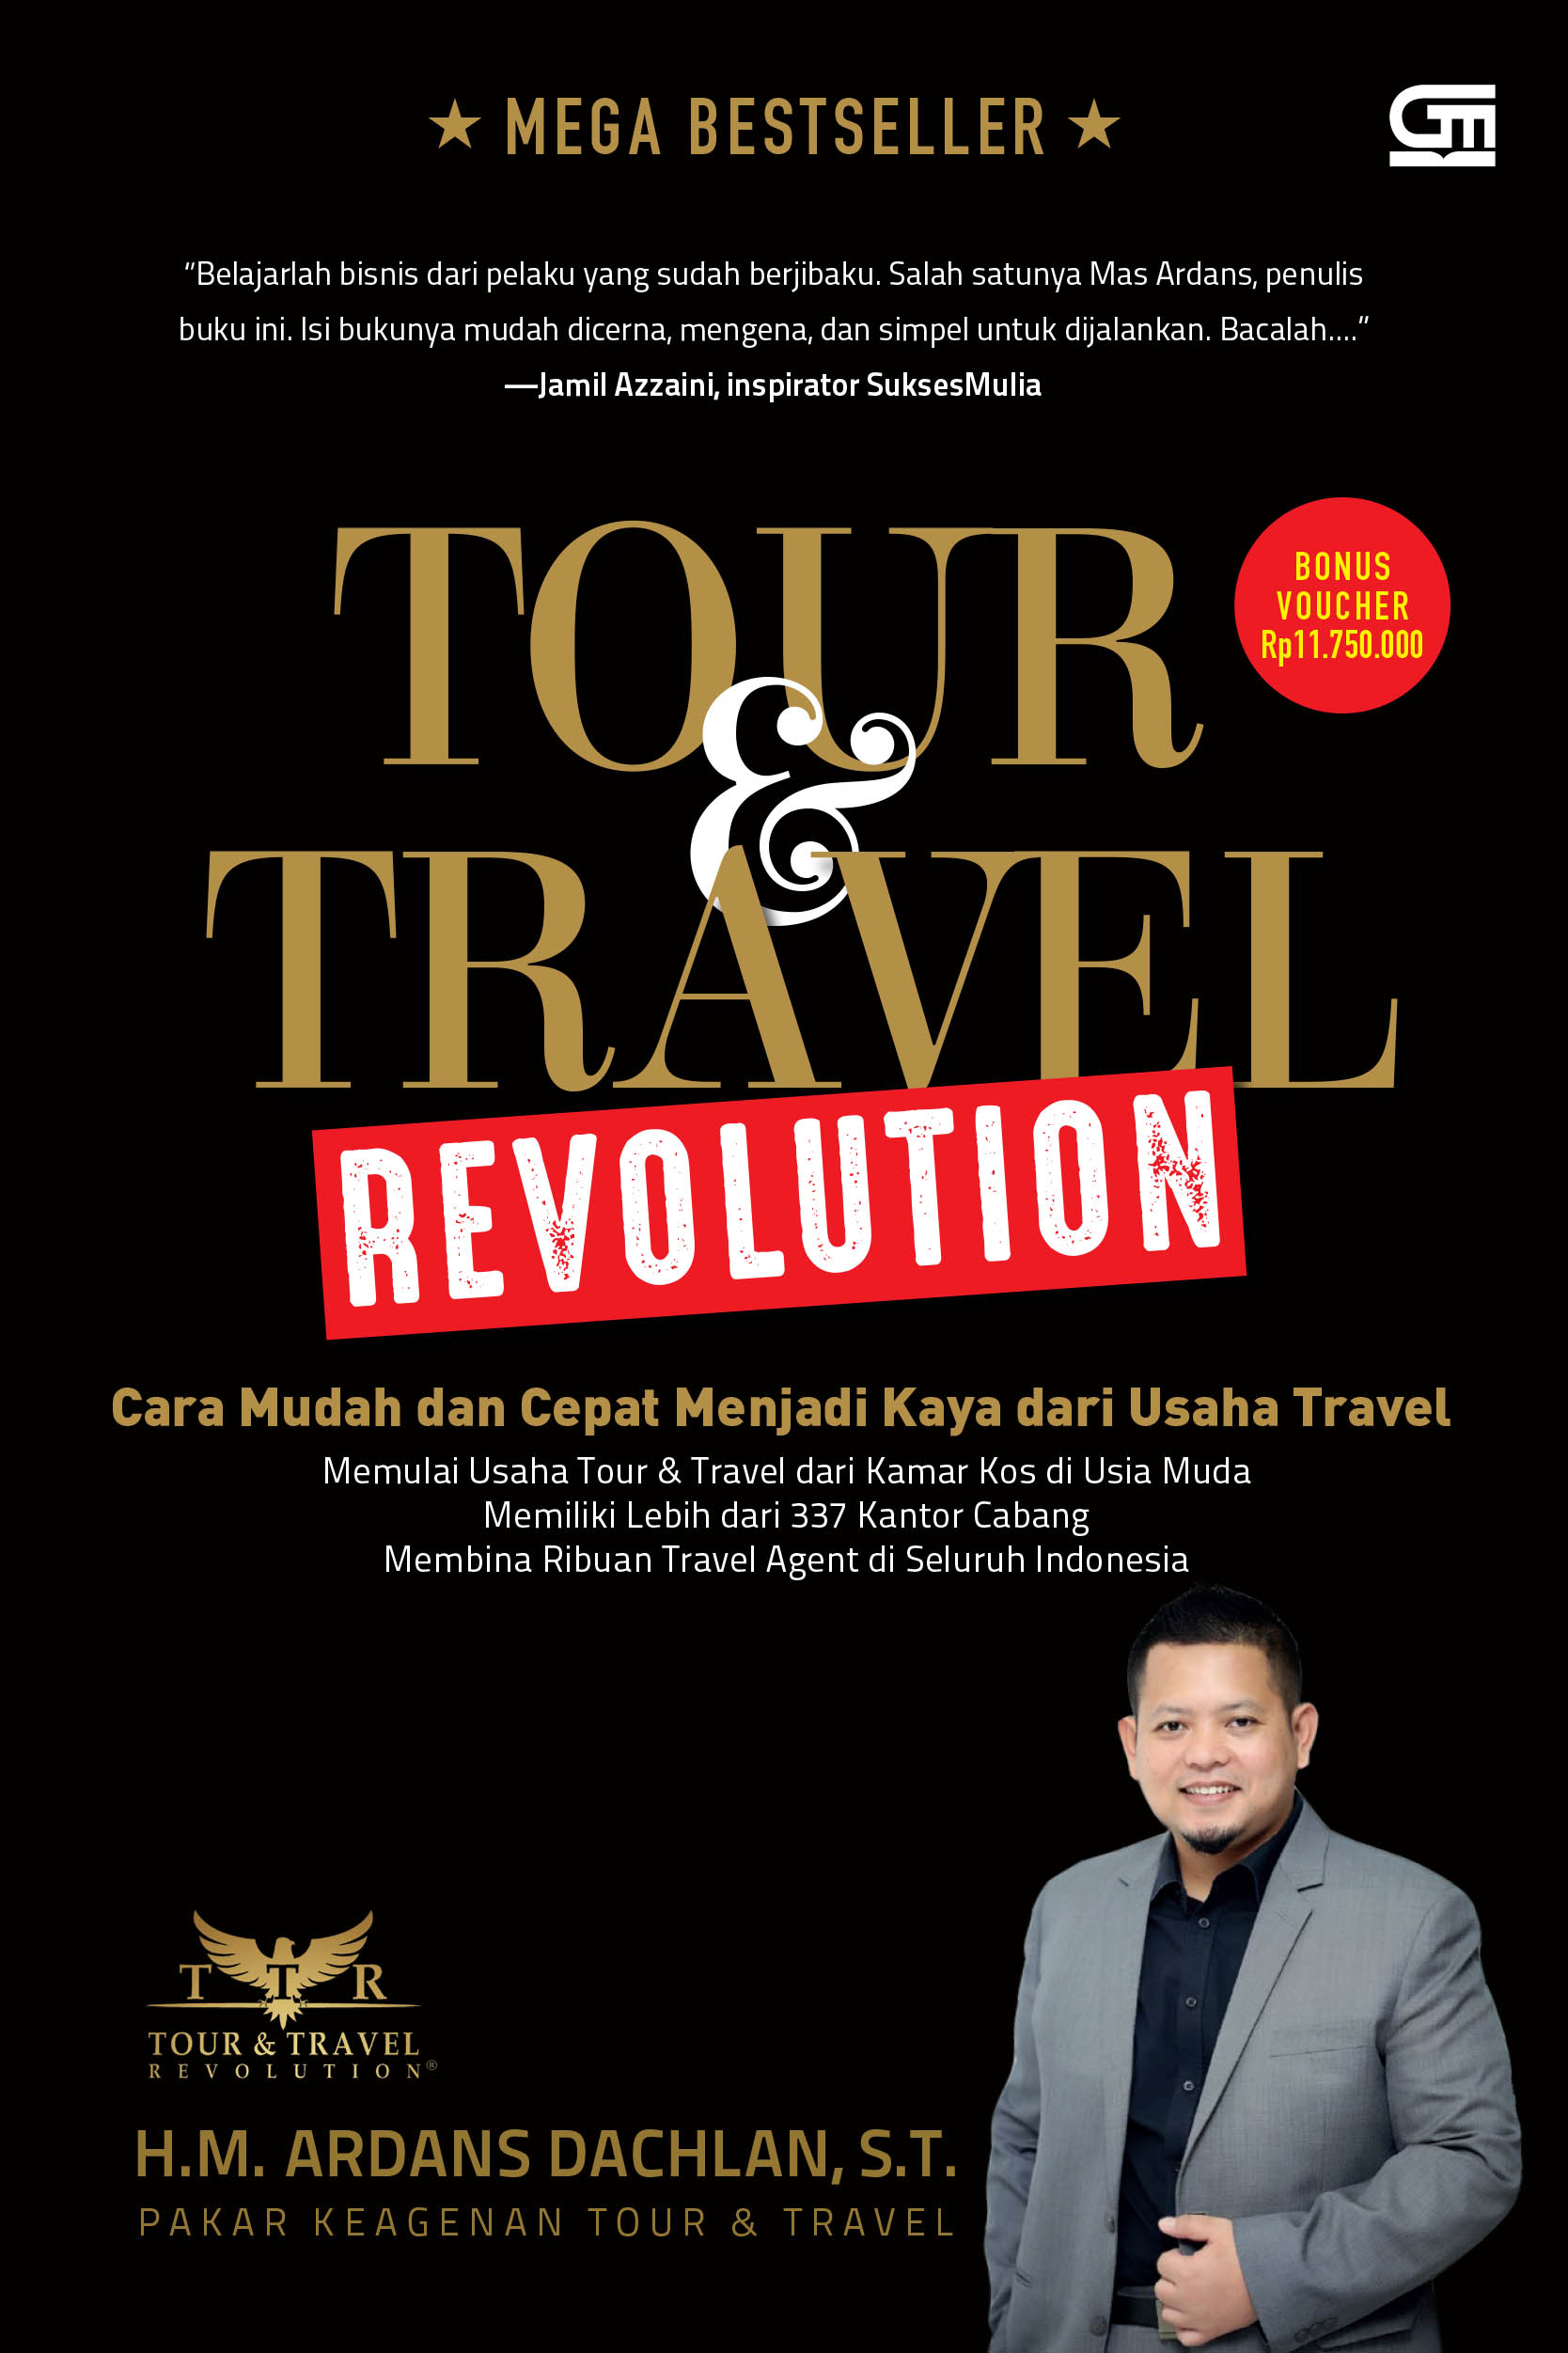 Tour & Travel Revolution